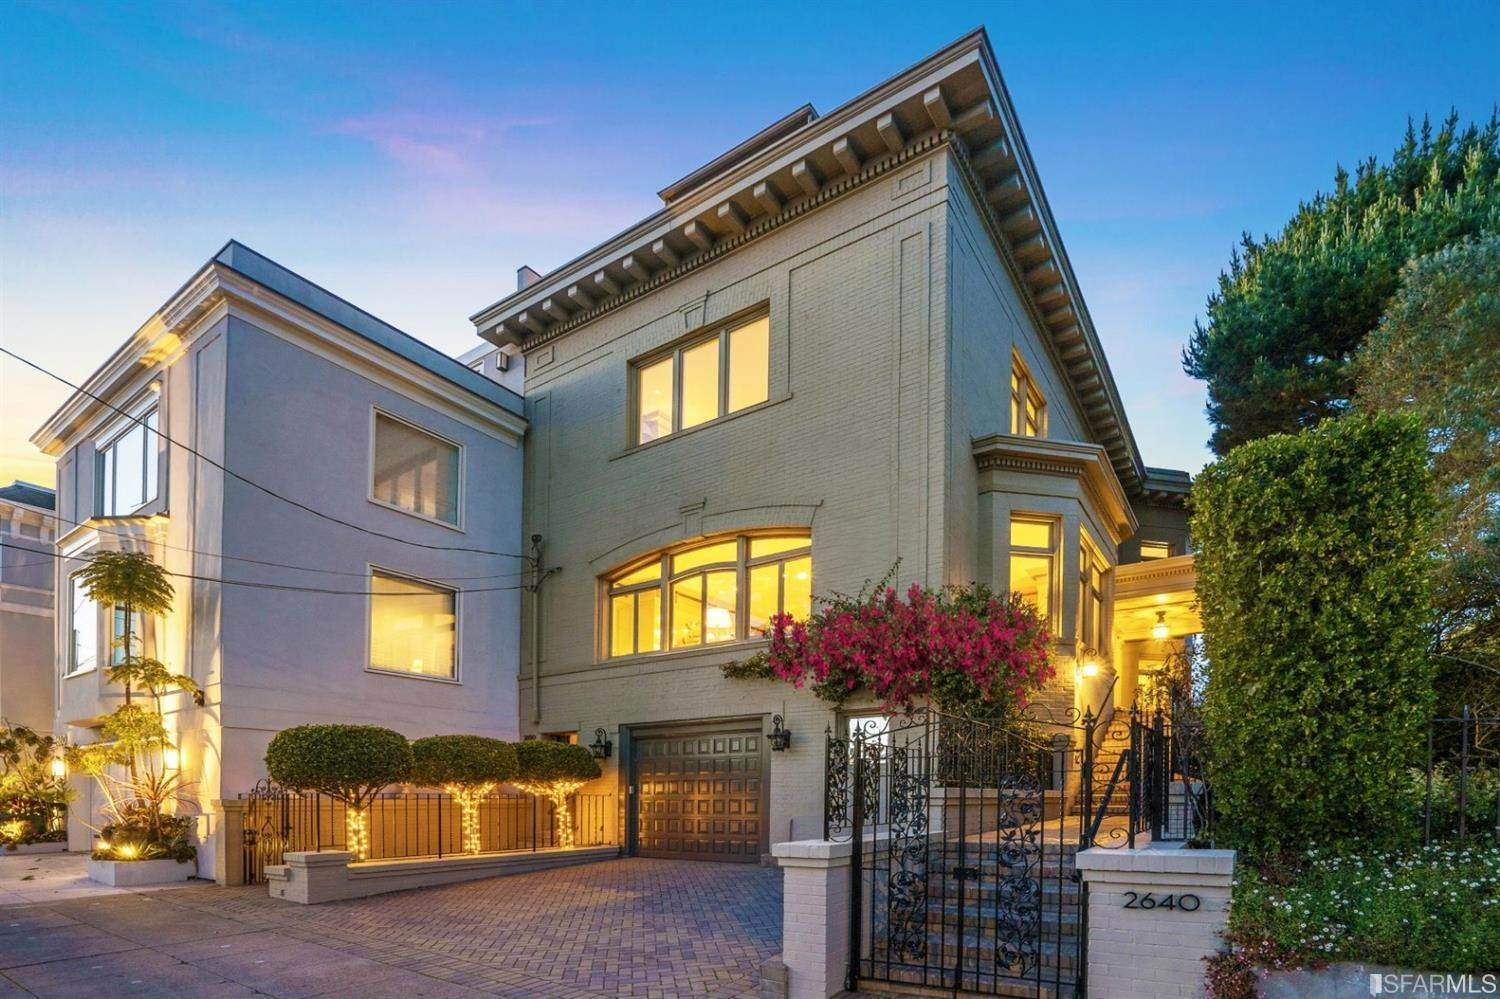 Single Family Homes for Sale at 2640 Jackson Street San Francisco, California 94115 United States